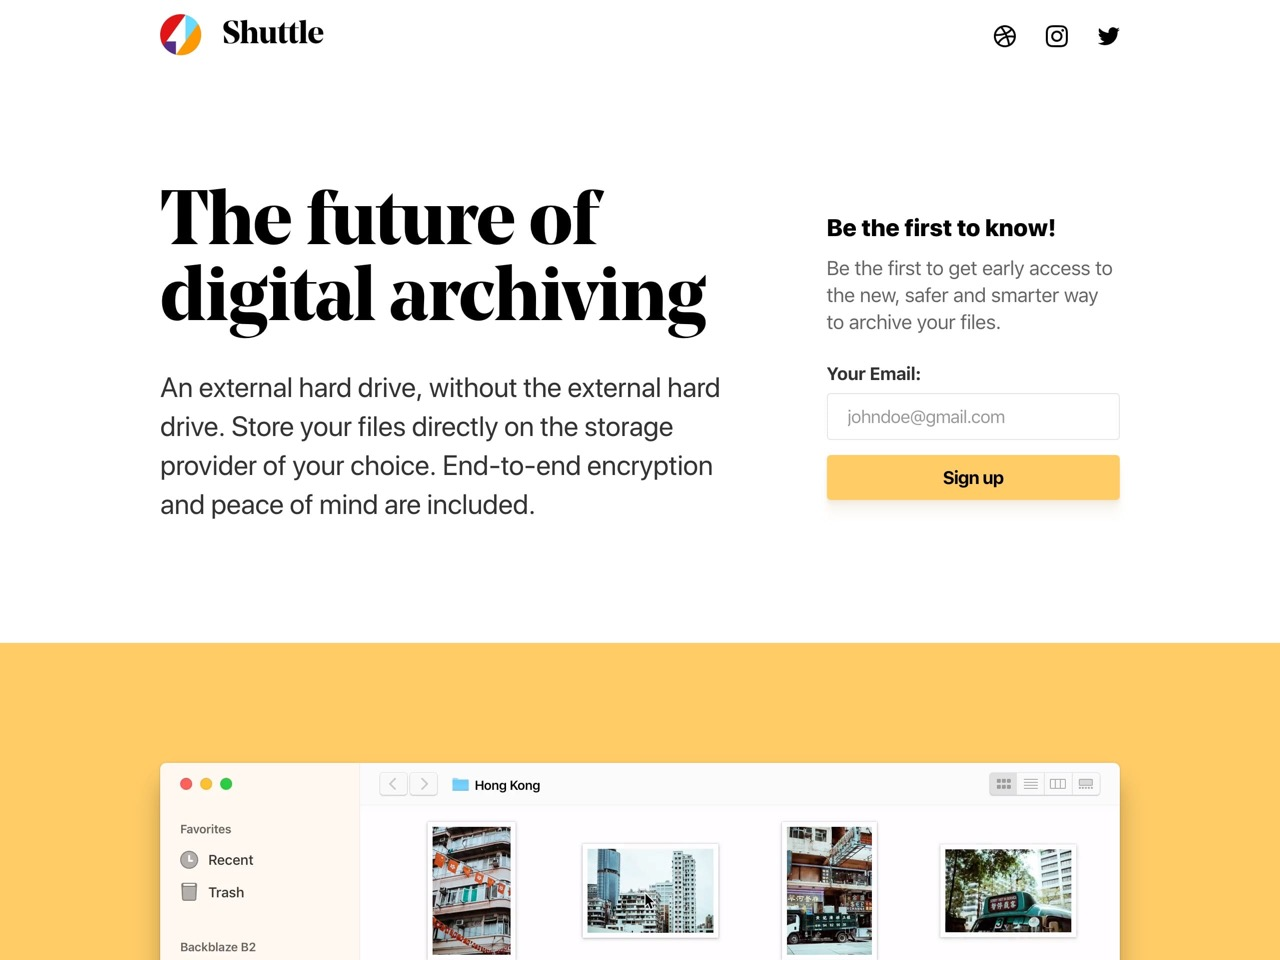 The future of digital archiving   shuttle